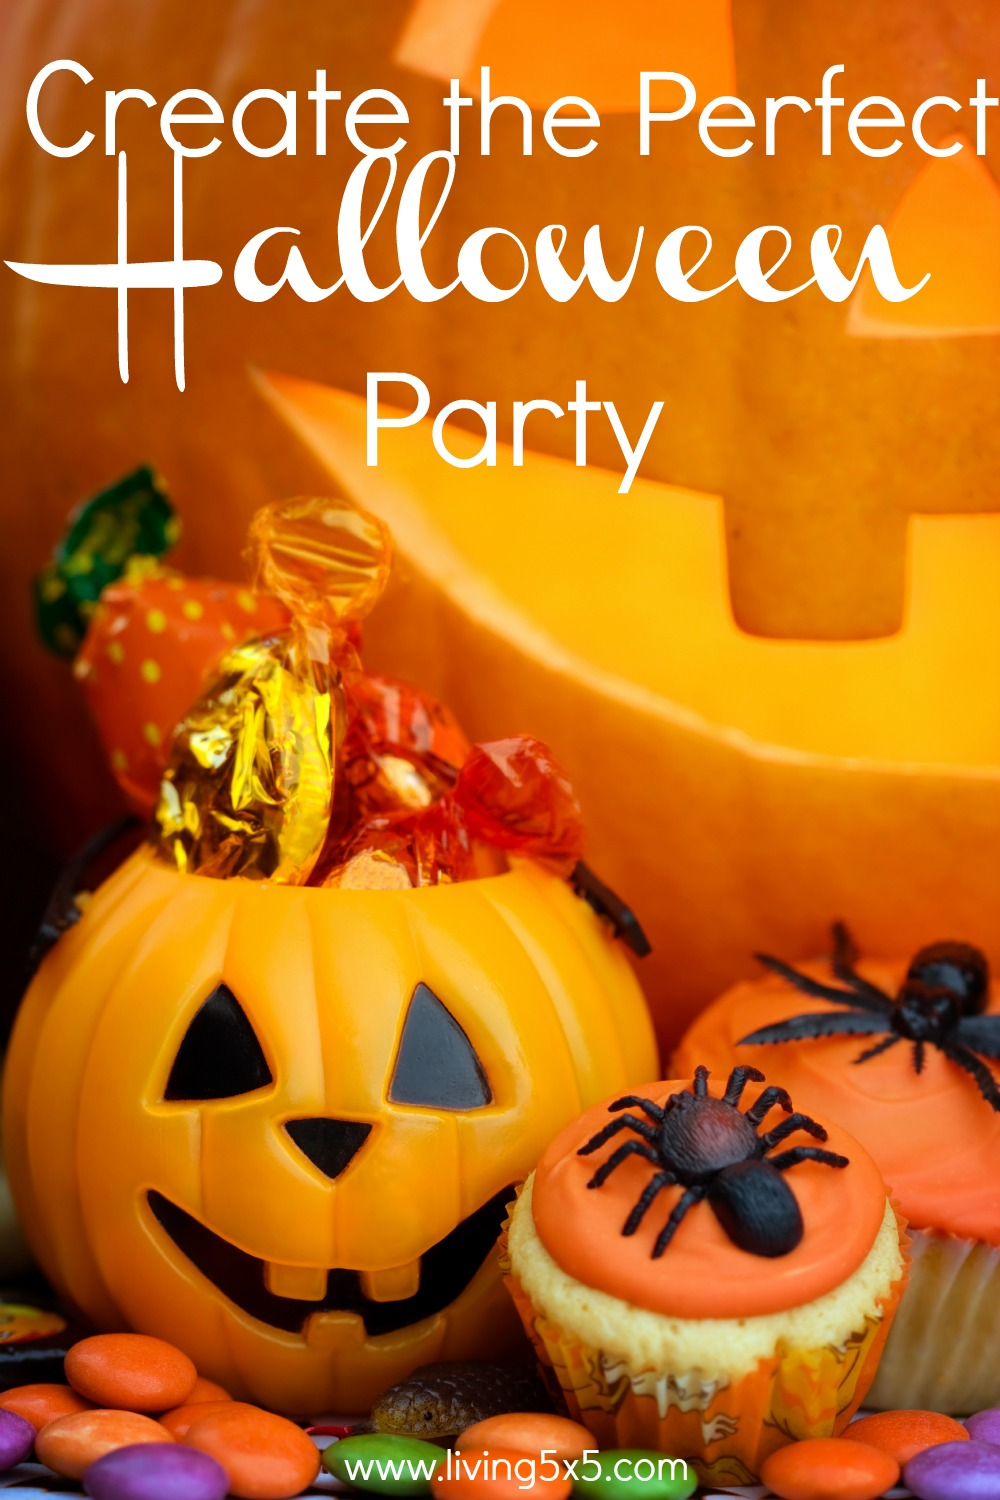 See how you can be creating the perfect Halloween party by planning ahead.